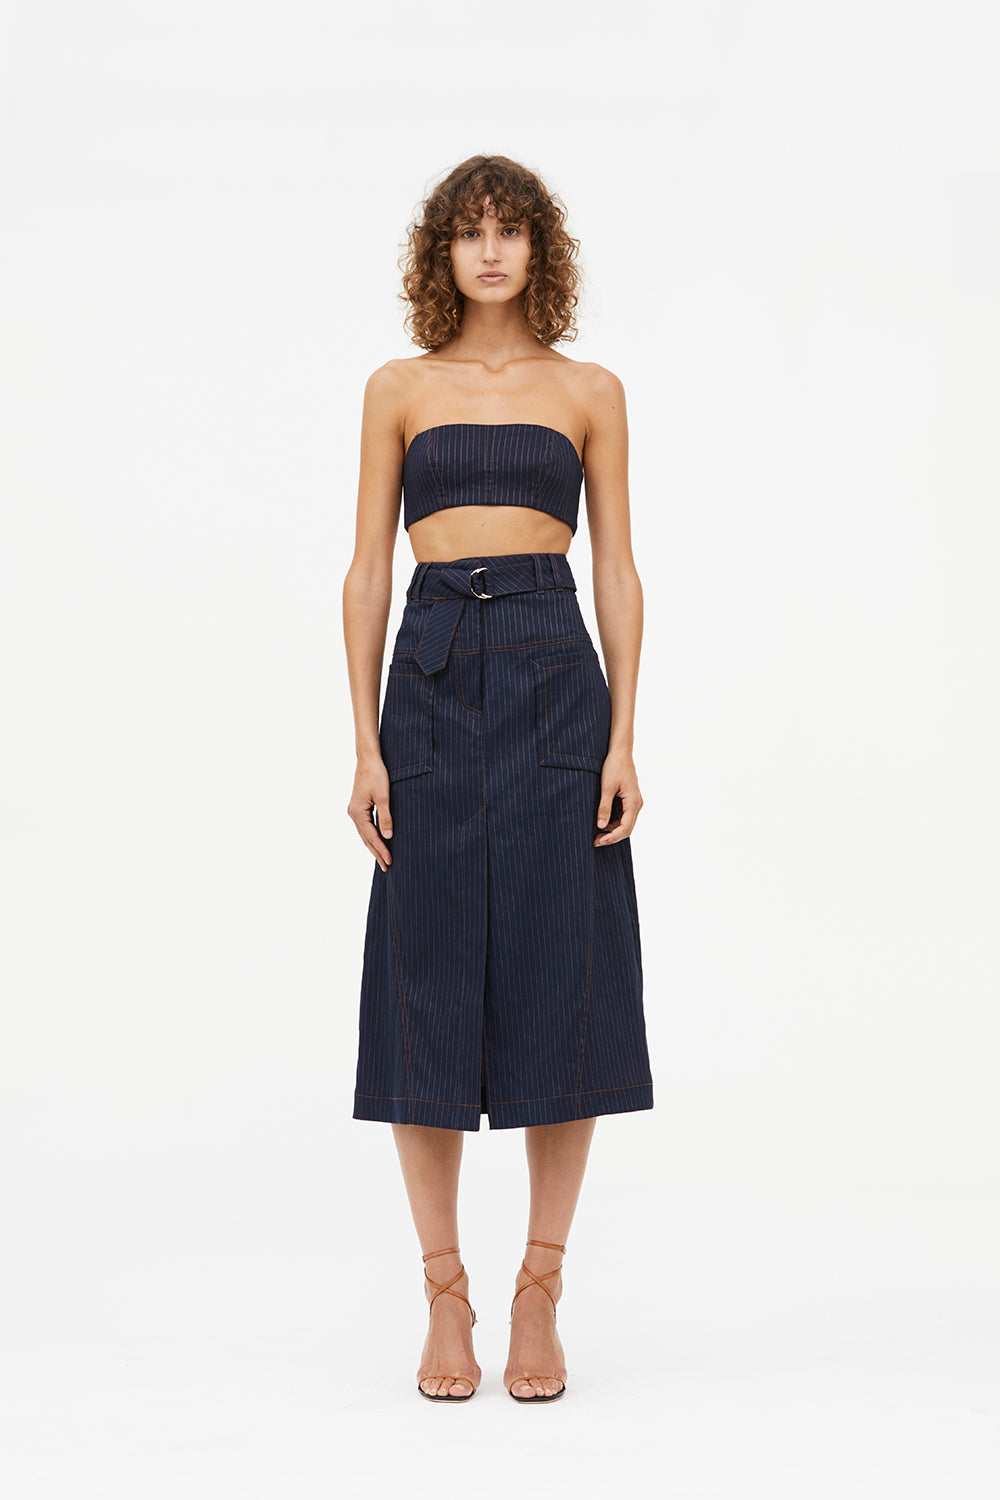 UTILITY THEORY SKIRT